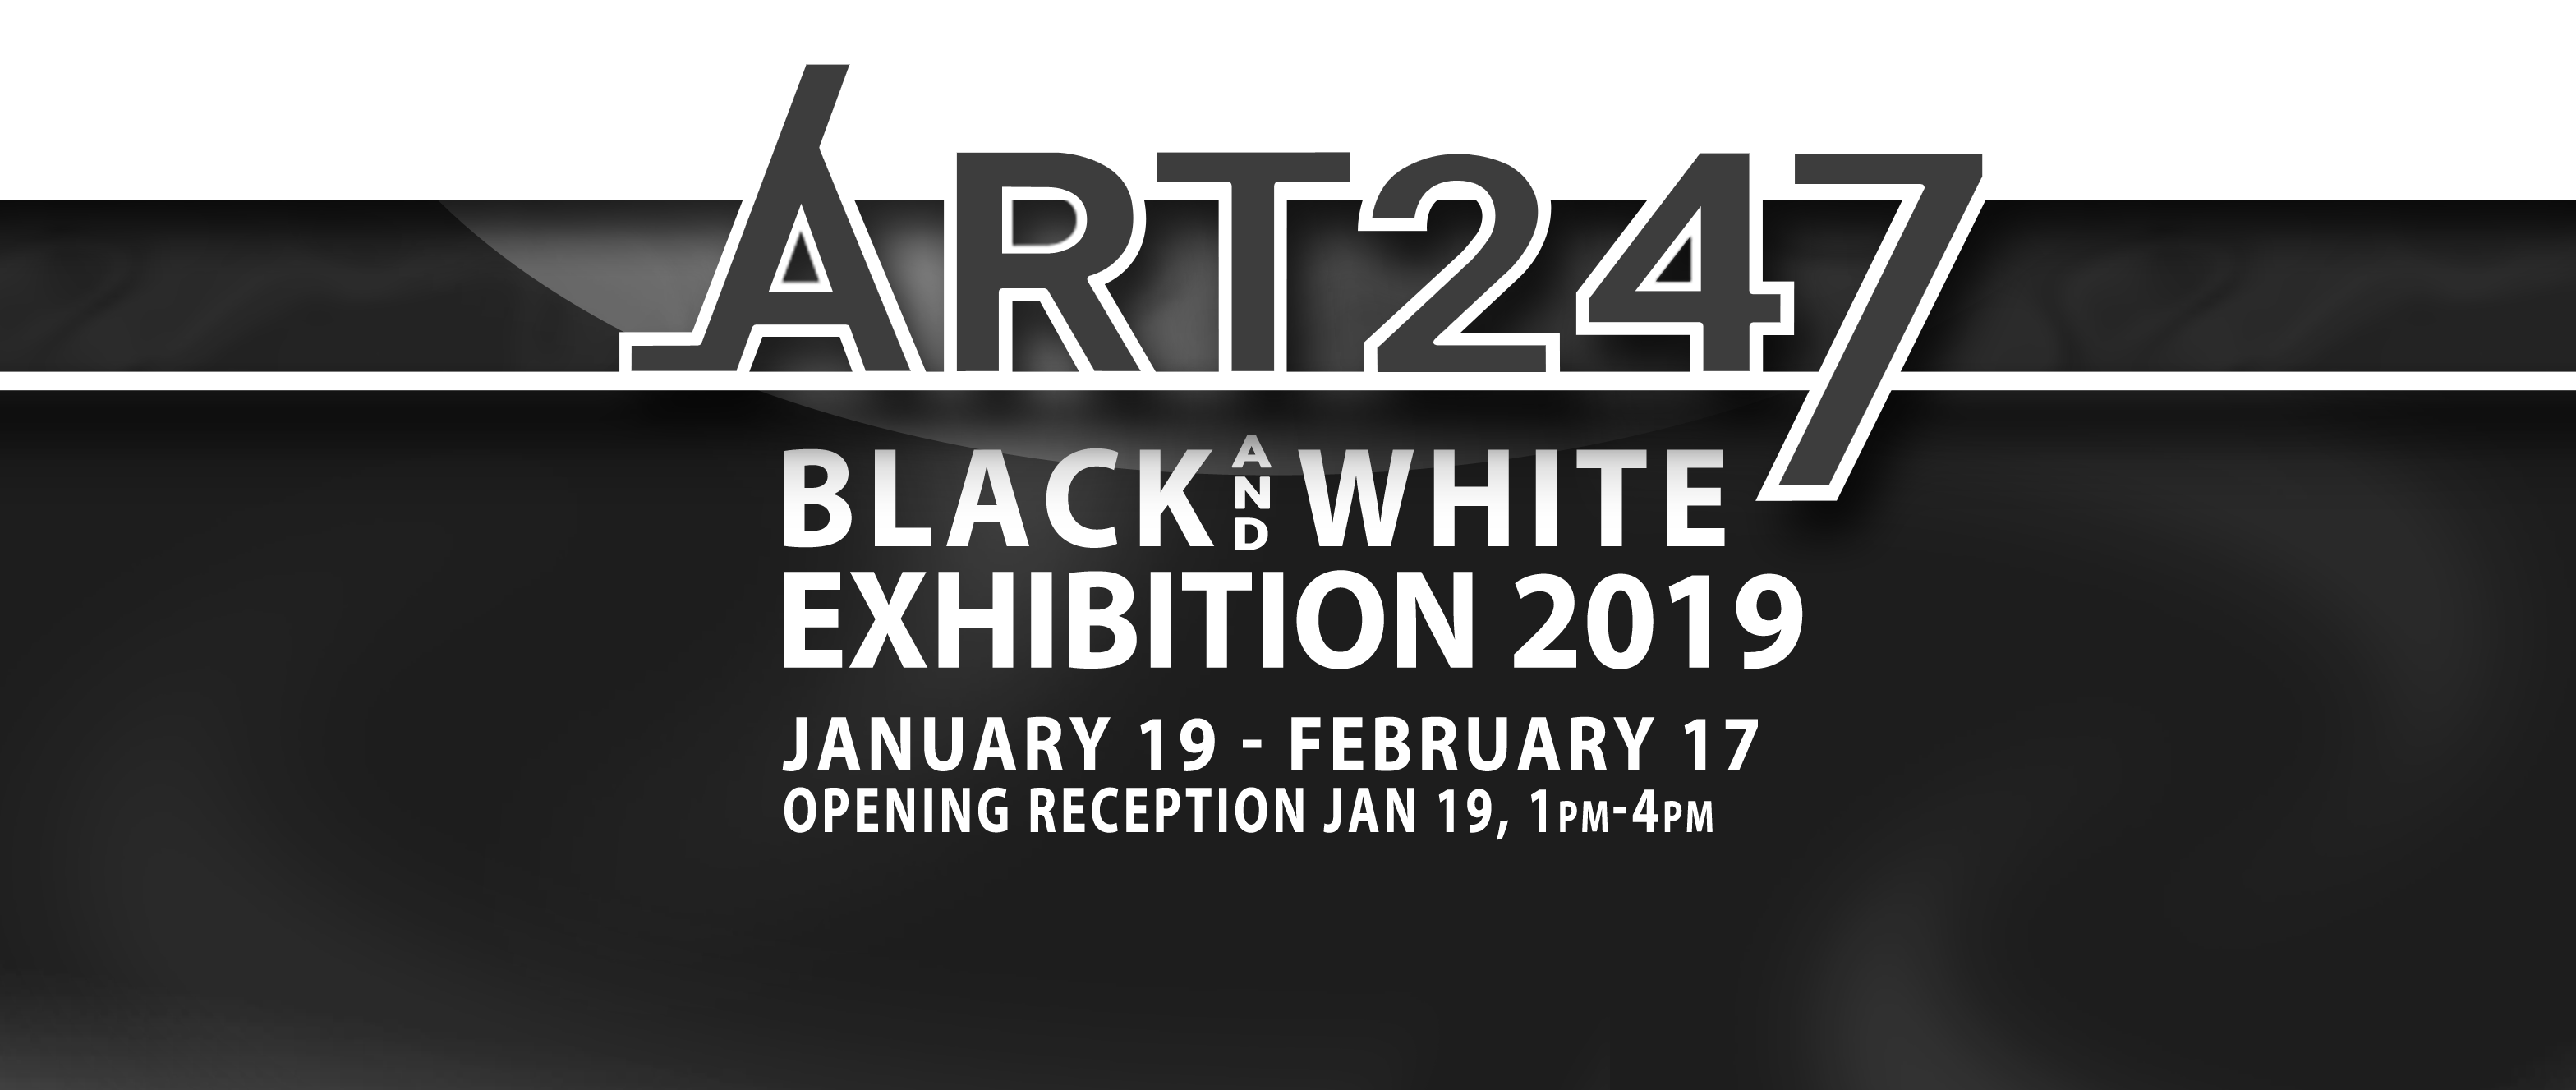 Black & White | Exhibition 2019